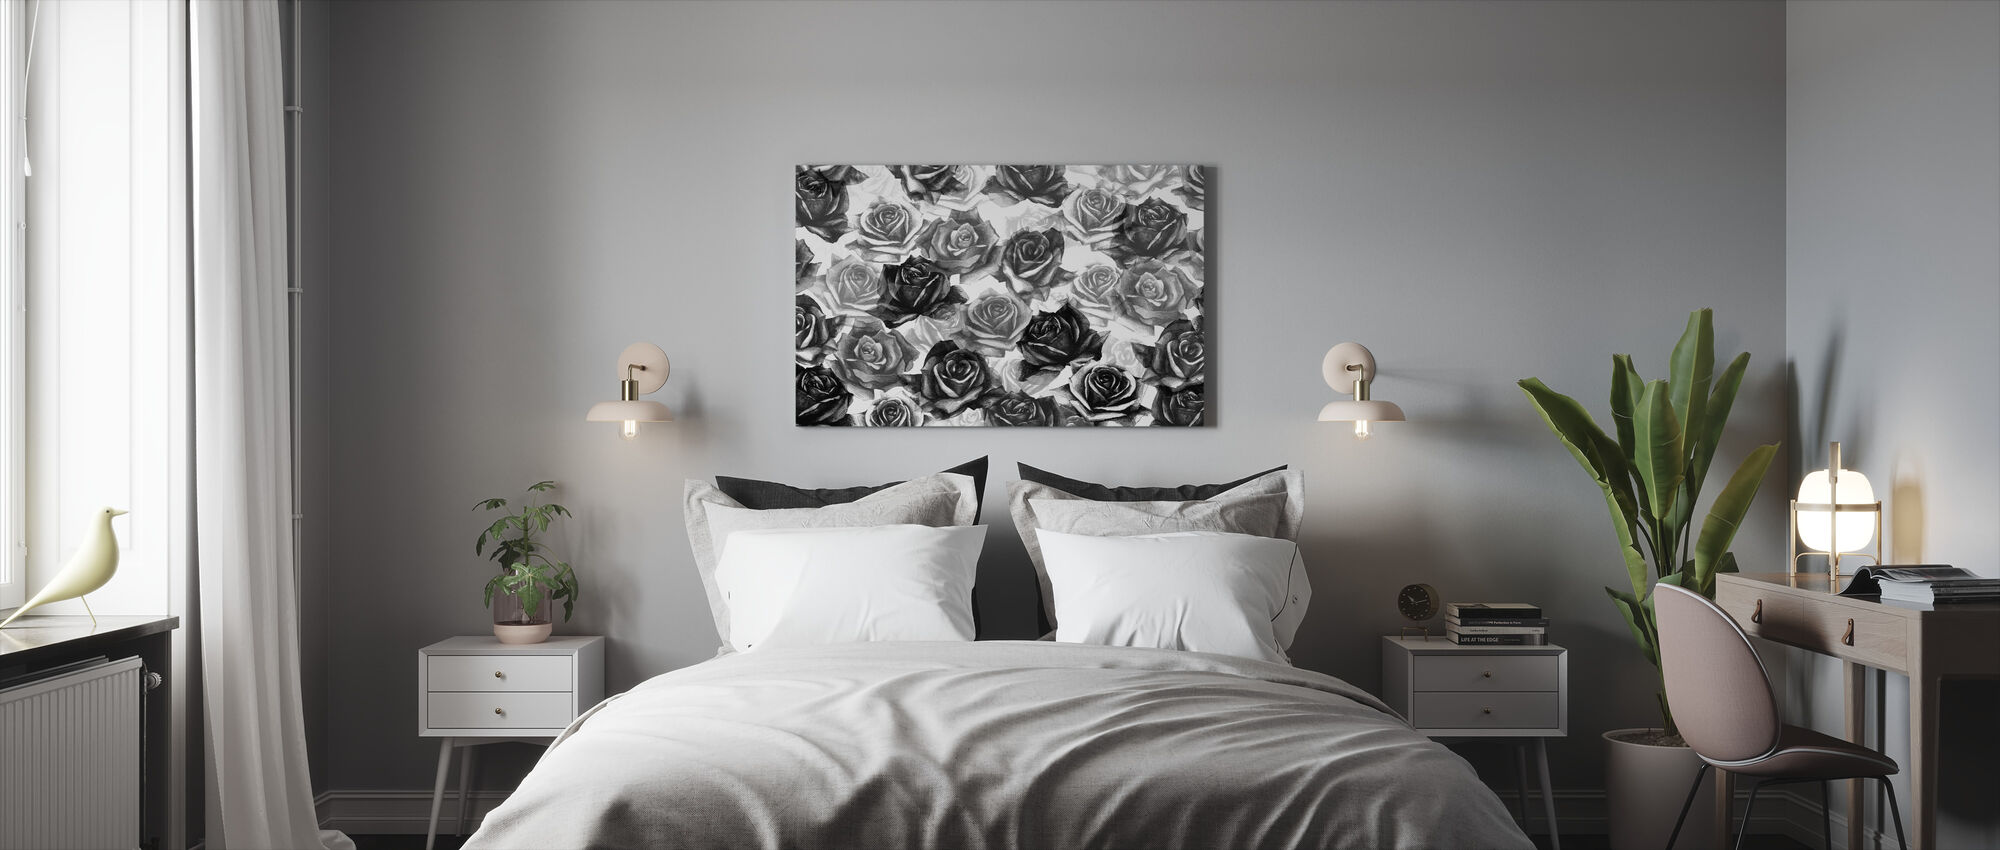 My Black Roses - Canvas print - Bedroom